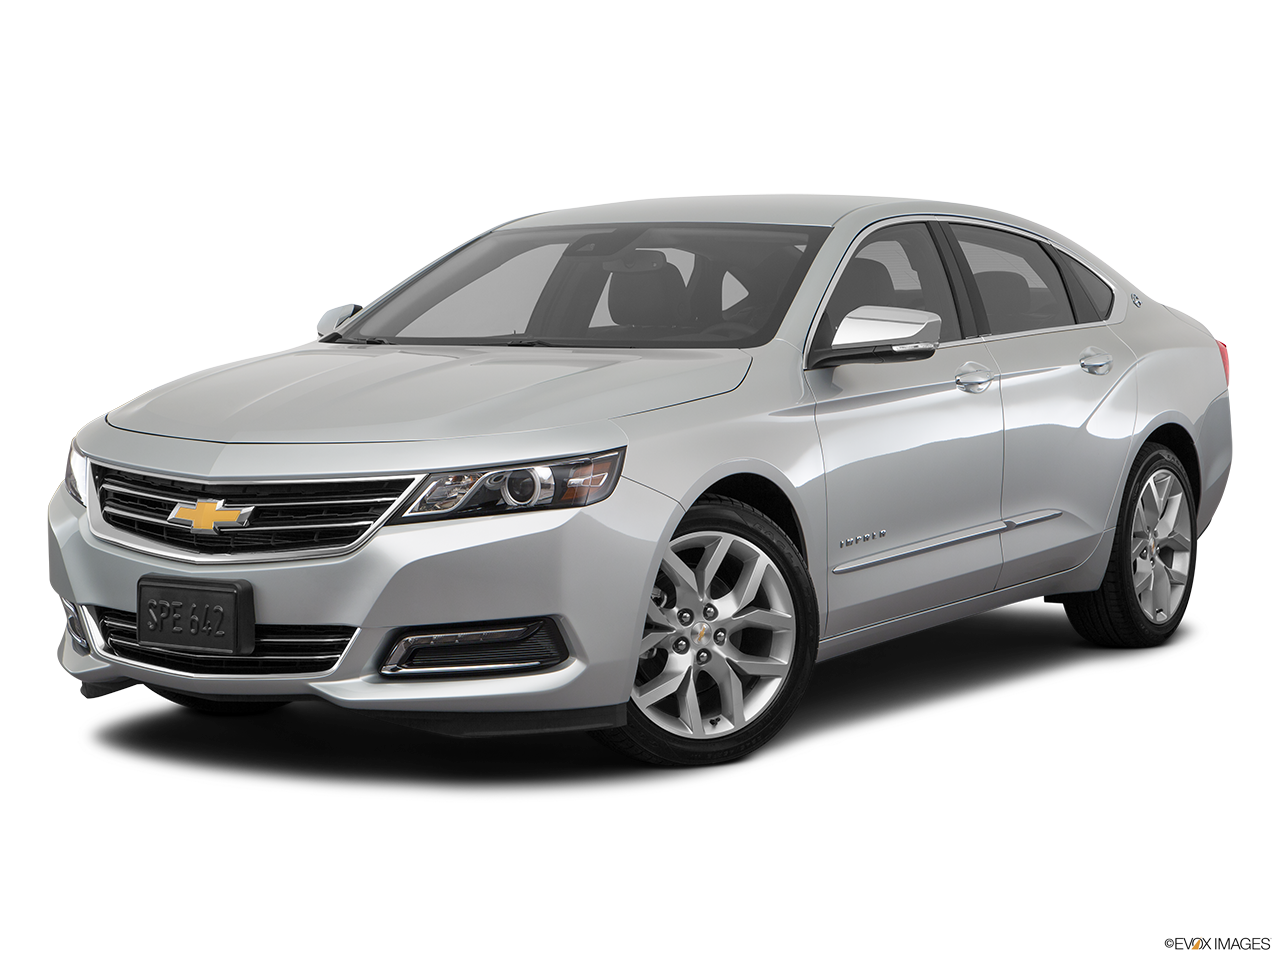 Test drive a 2017 chevrolet impala at alamo city chevrolet in san antonio